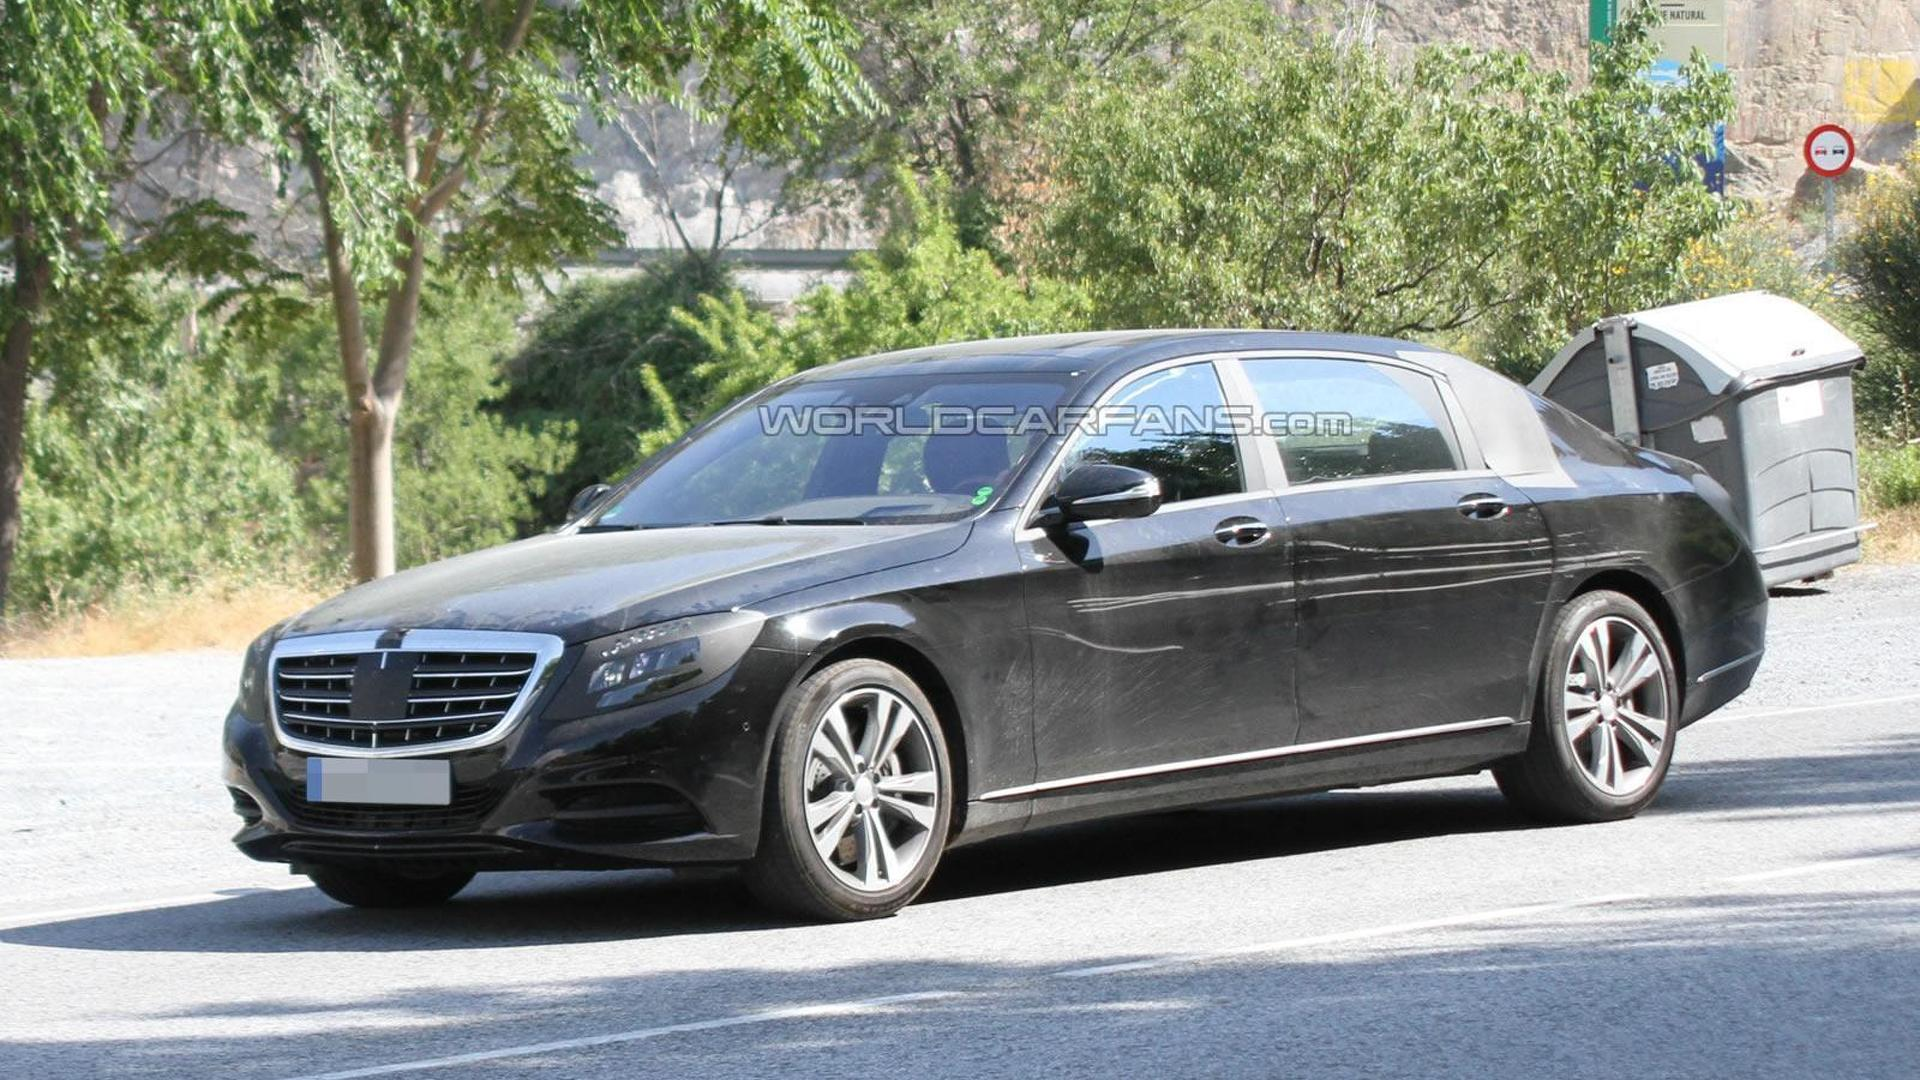 Mercedes Benz S Class Pullman to cost up to 250 000 EUR